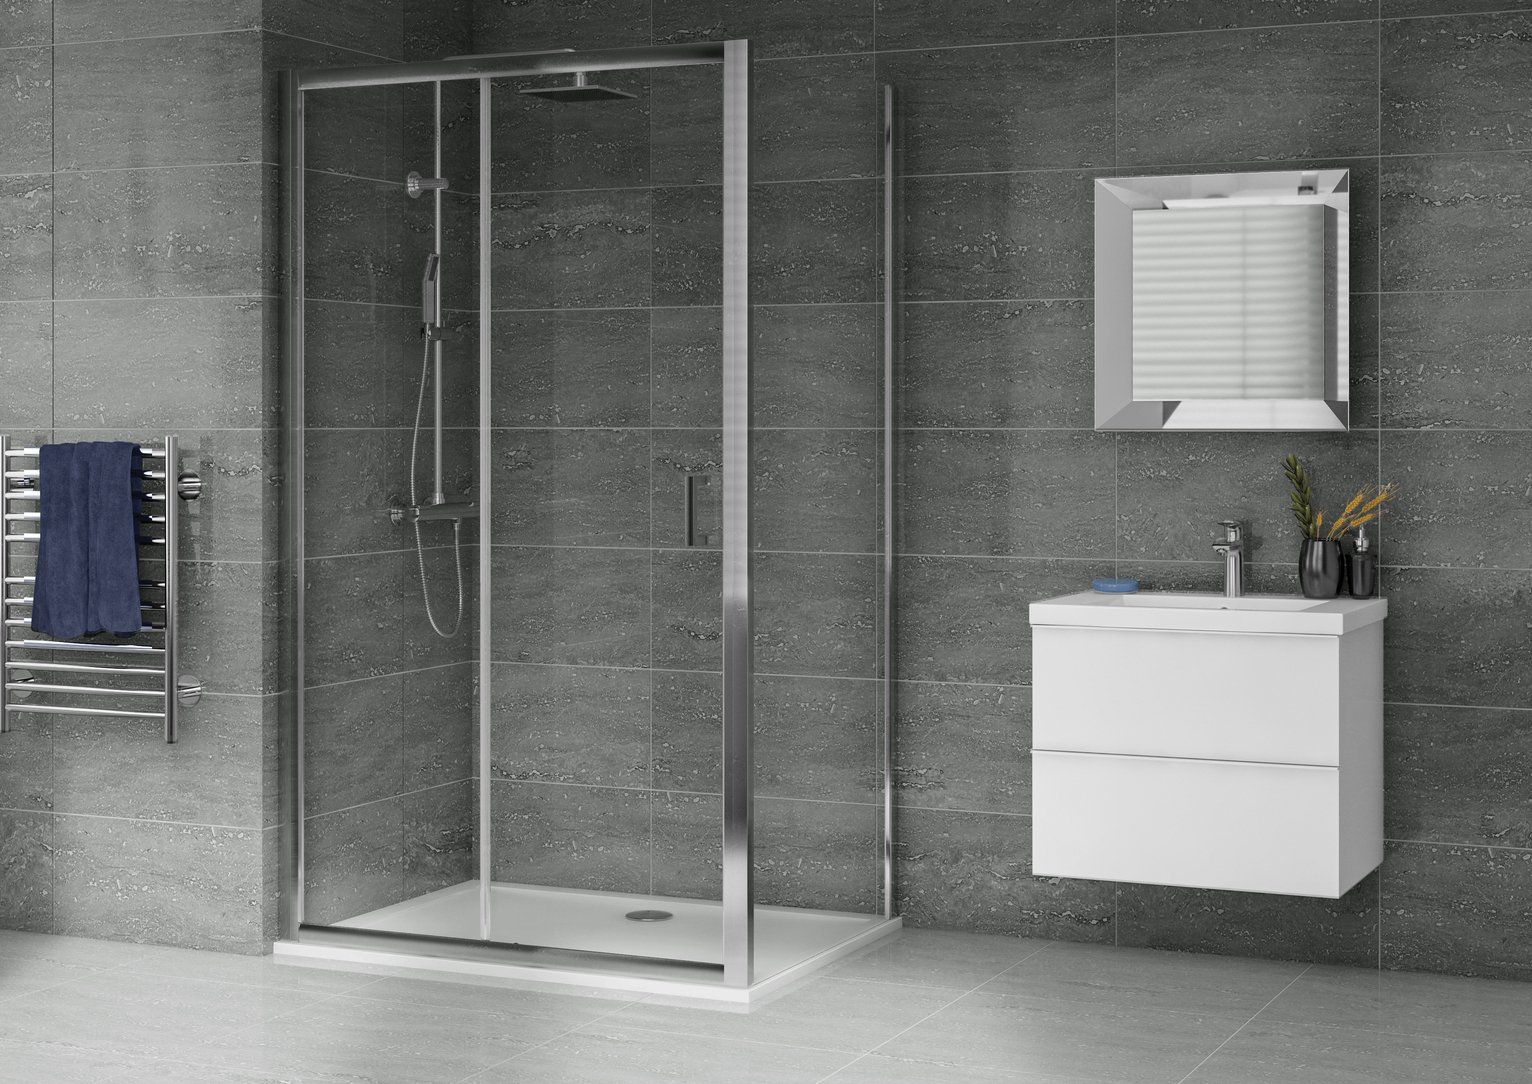 Image of Aqualux 1200mm x 800mm Sliding Door Shower Enclosure & Tray